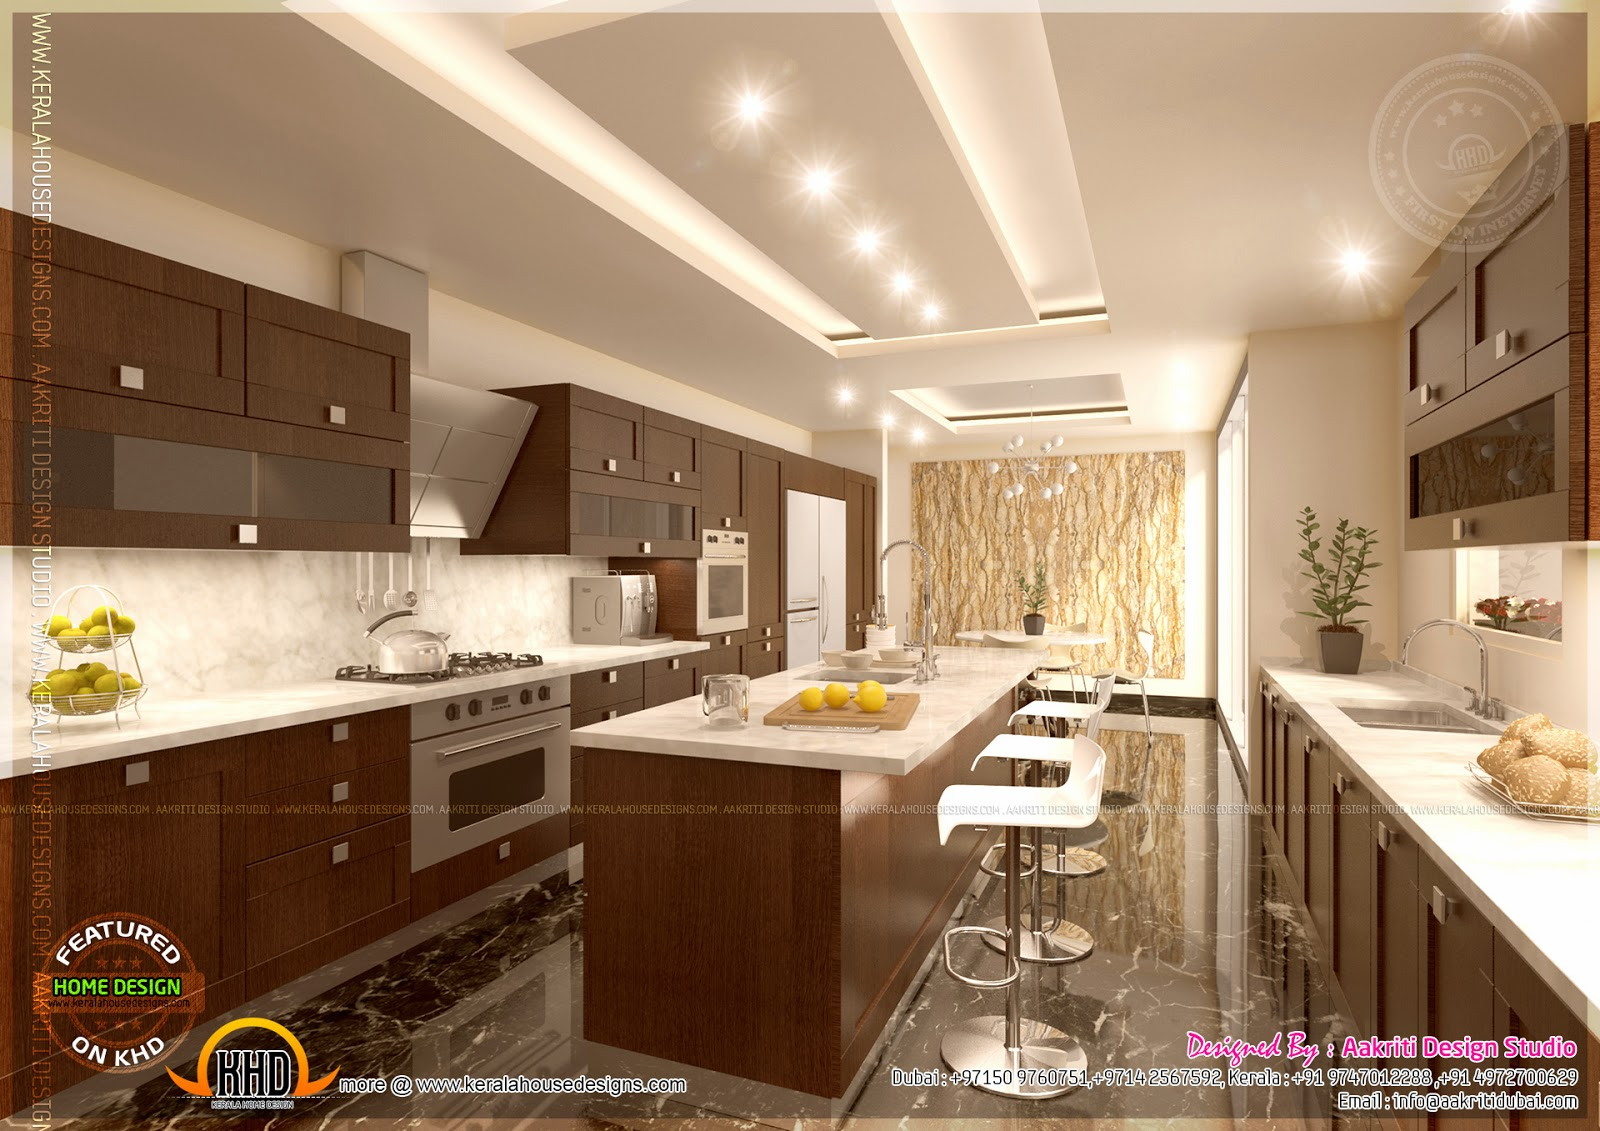 Kitchen designs by aakriti design studio home kerala plans for Kitchen designs dubai